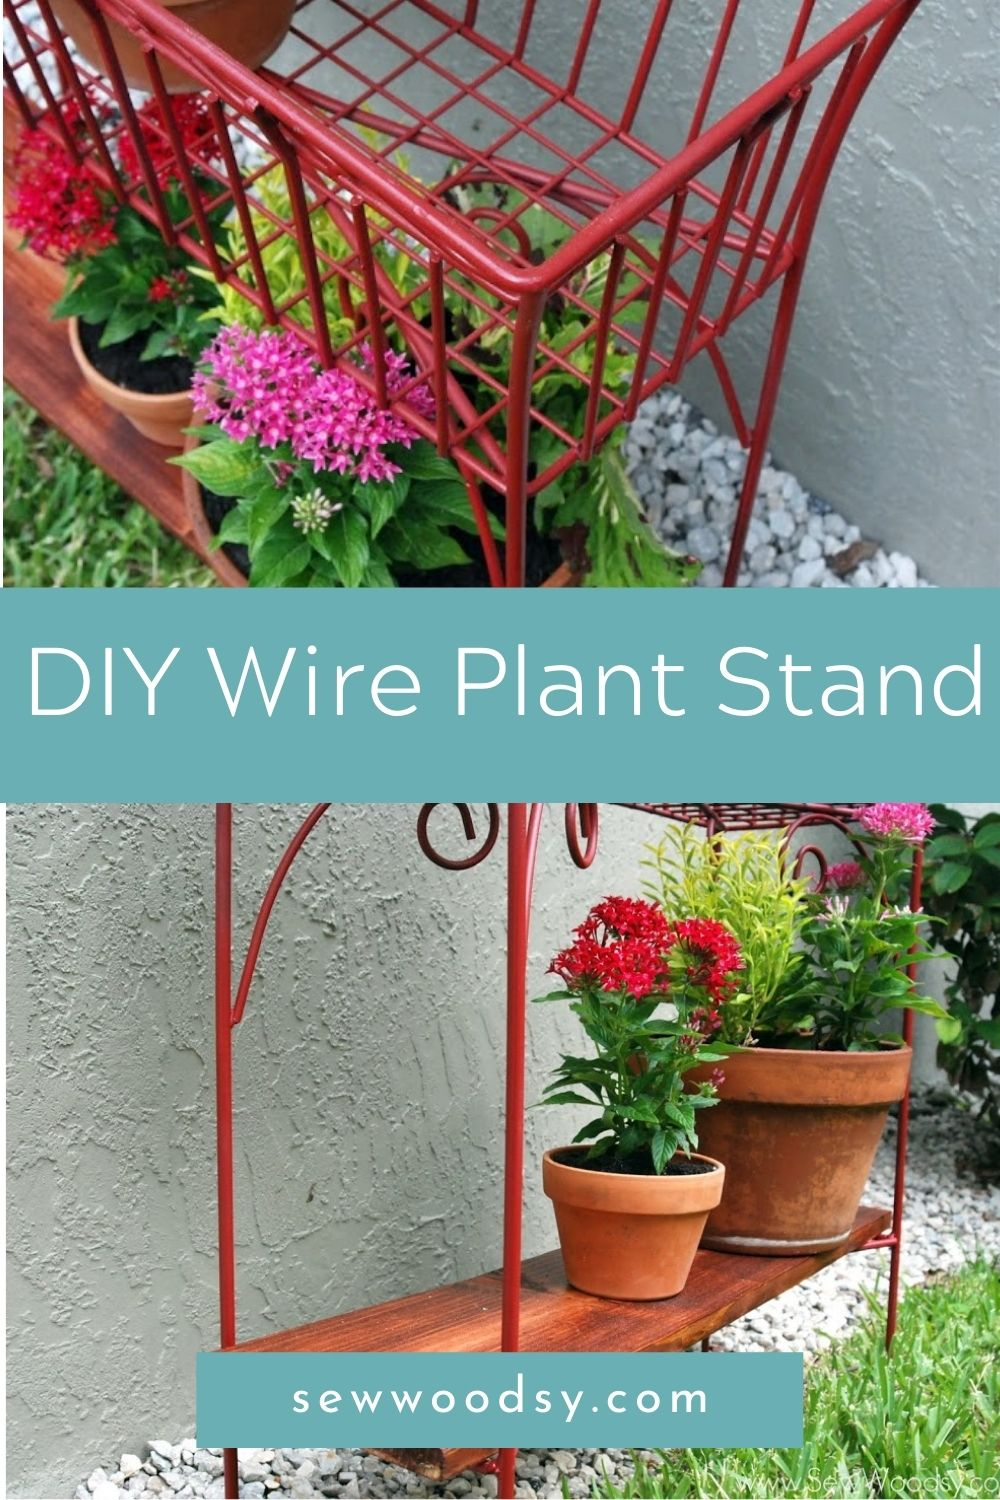 Two photos of a red wire plant stand split by text on image for Pinterest.